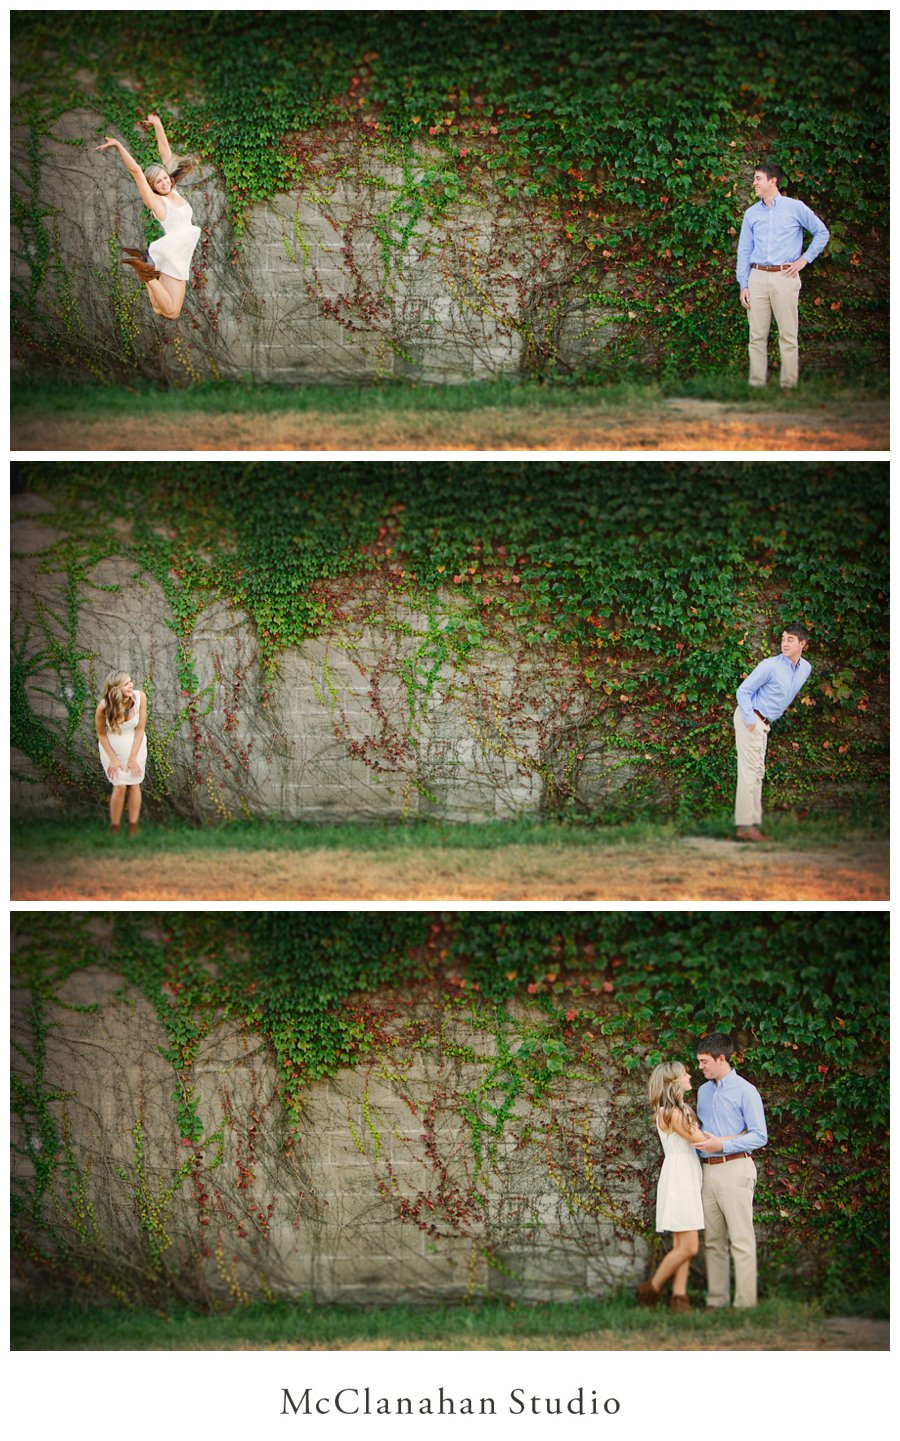 Grace Miller and Brandon Tucker flirting comically in front of an ivy wall, Quad Cities engagement photos by Iowa Wedding Photographer of the Year McClanahan Studio